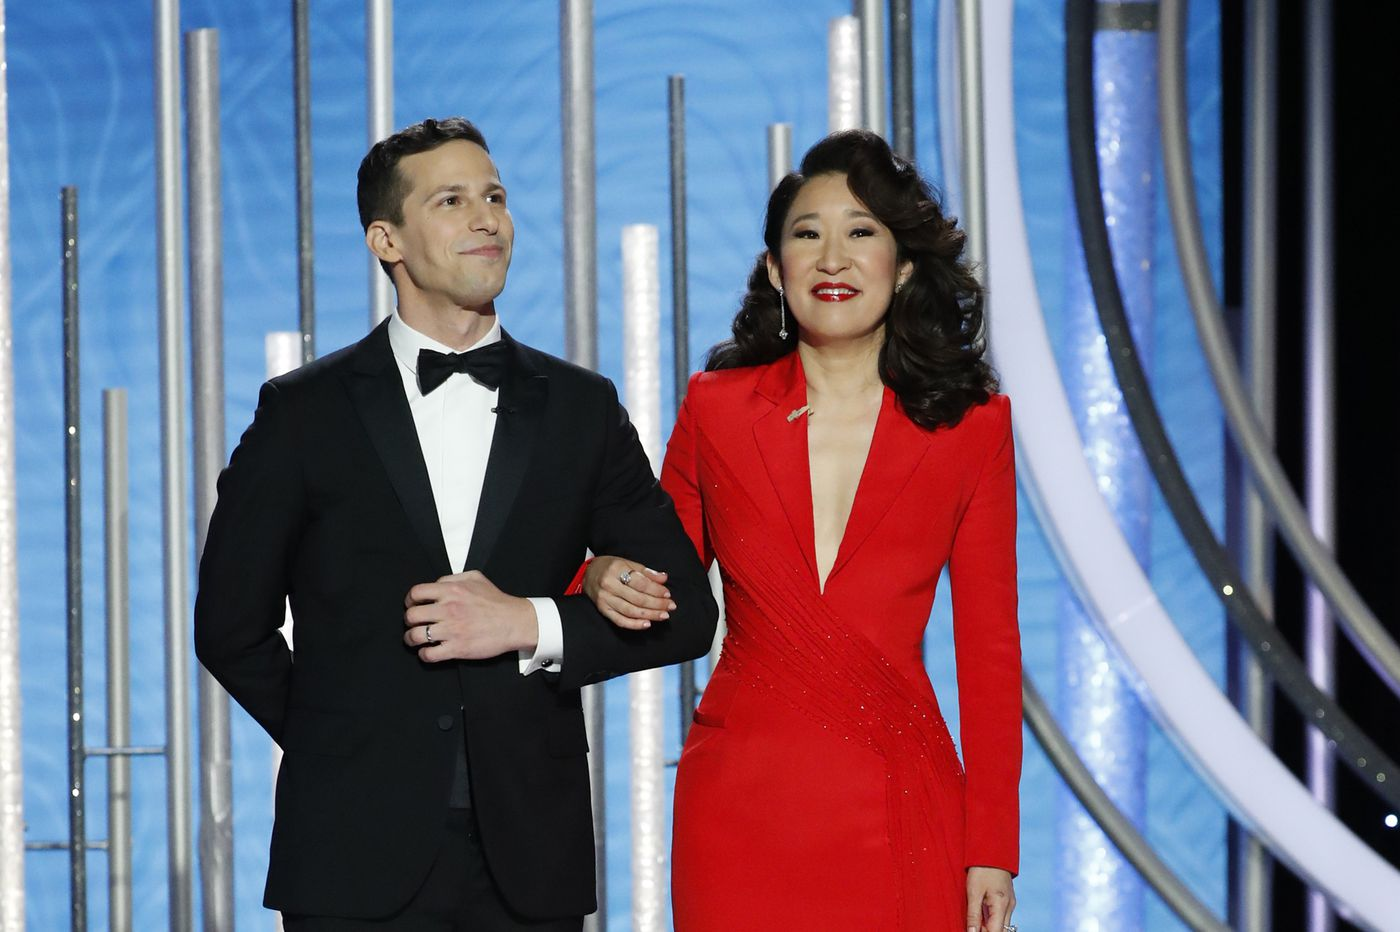 Golden Globes 2019: A nice night for an awards show (really, really nice)